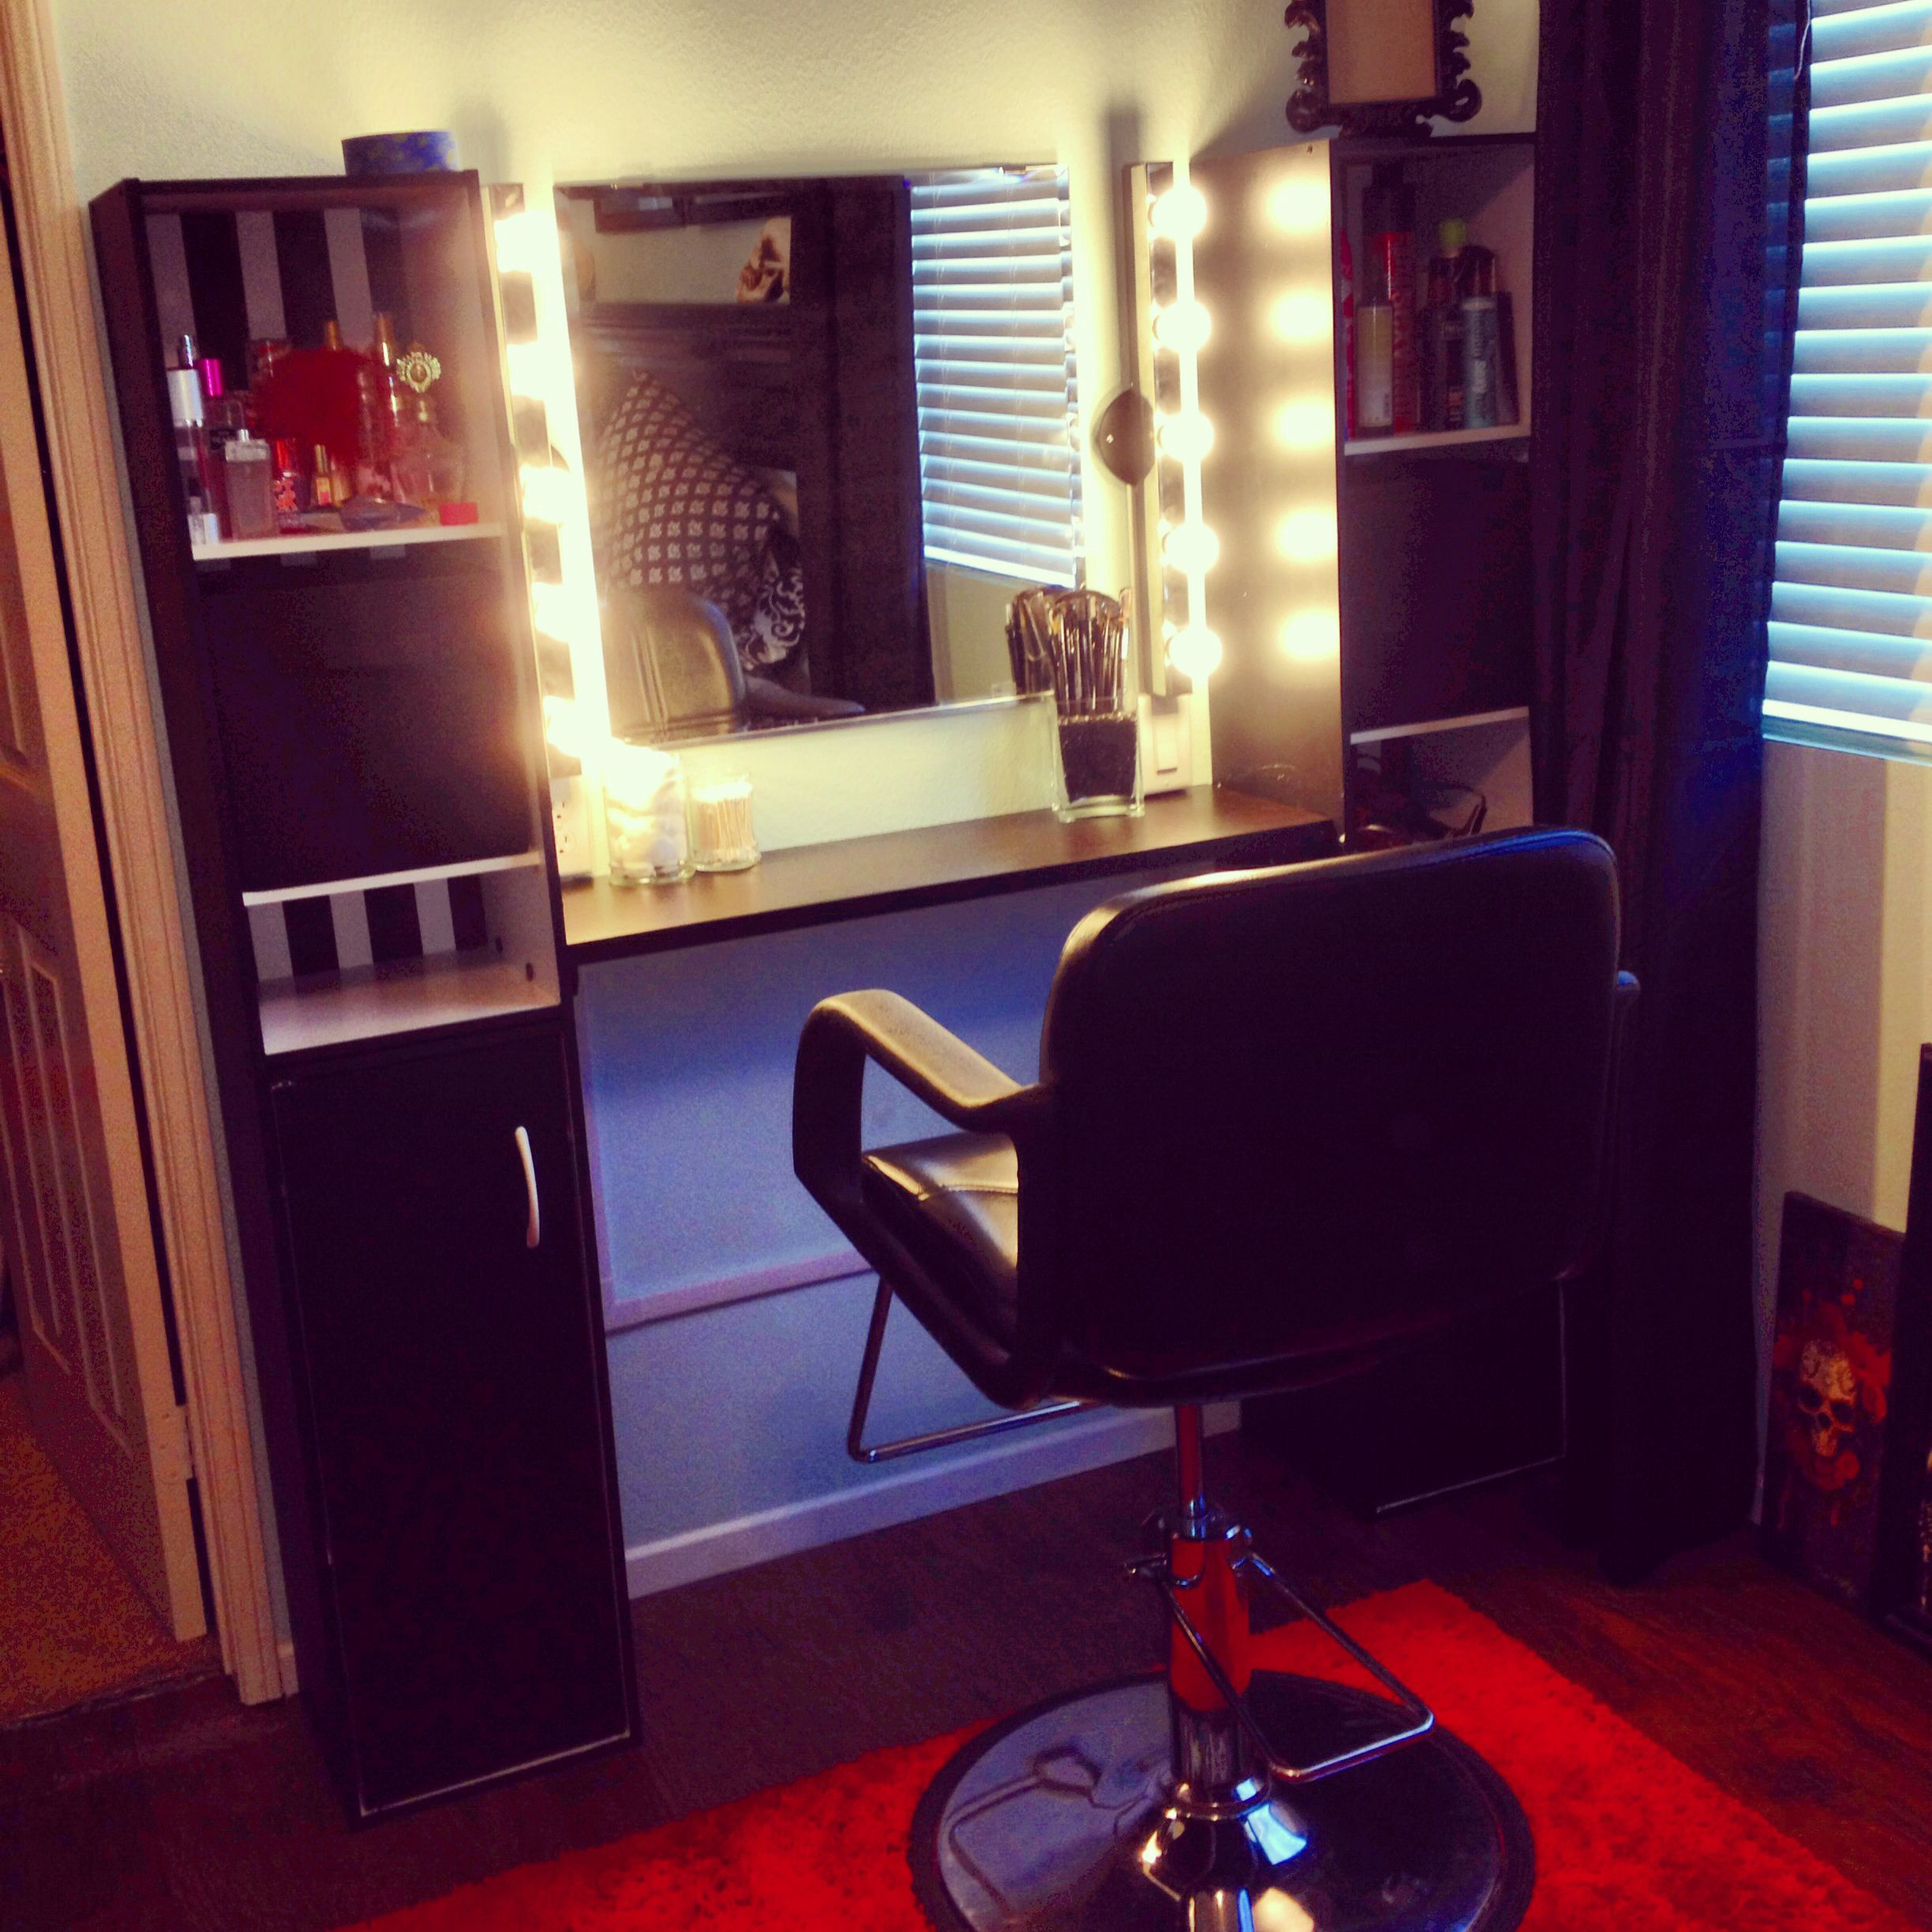 Megan's DIY vanity, lights, makeup bench, home salon For